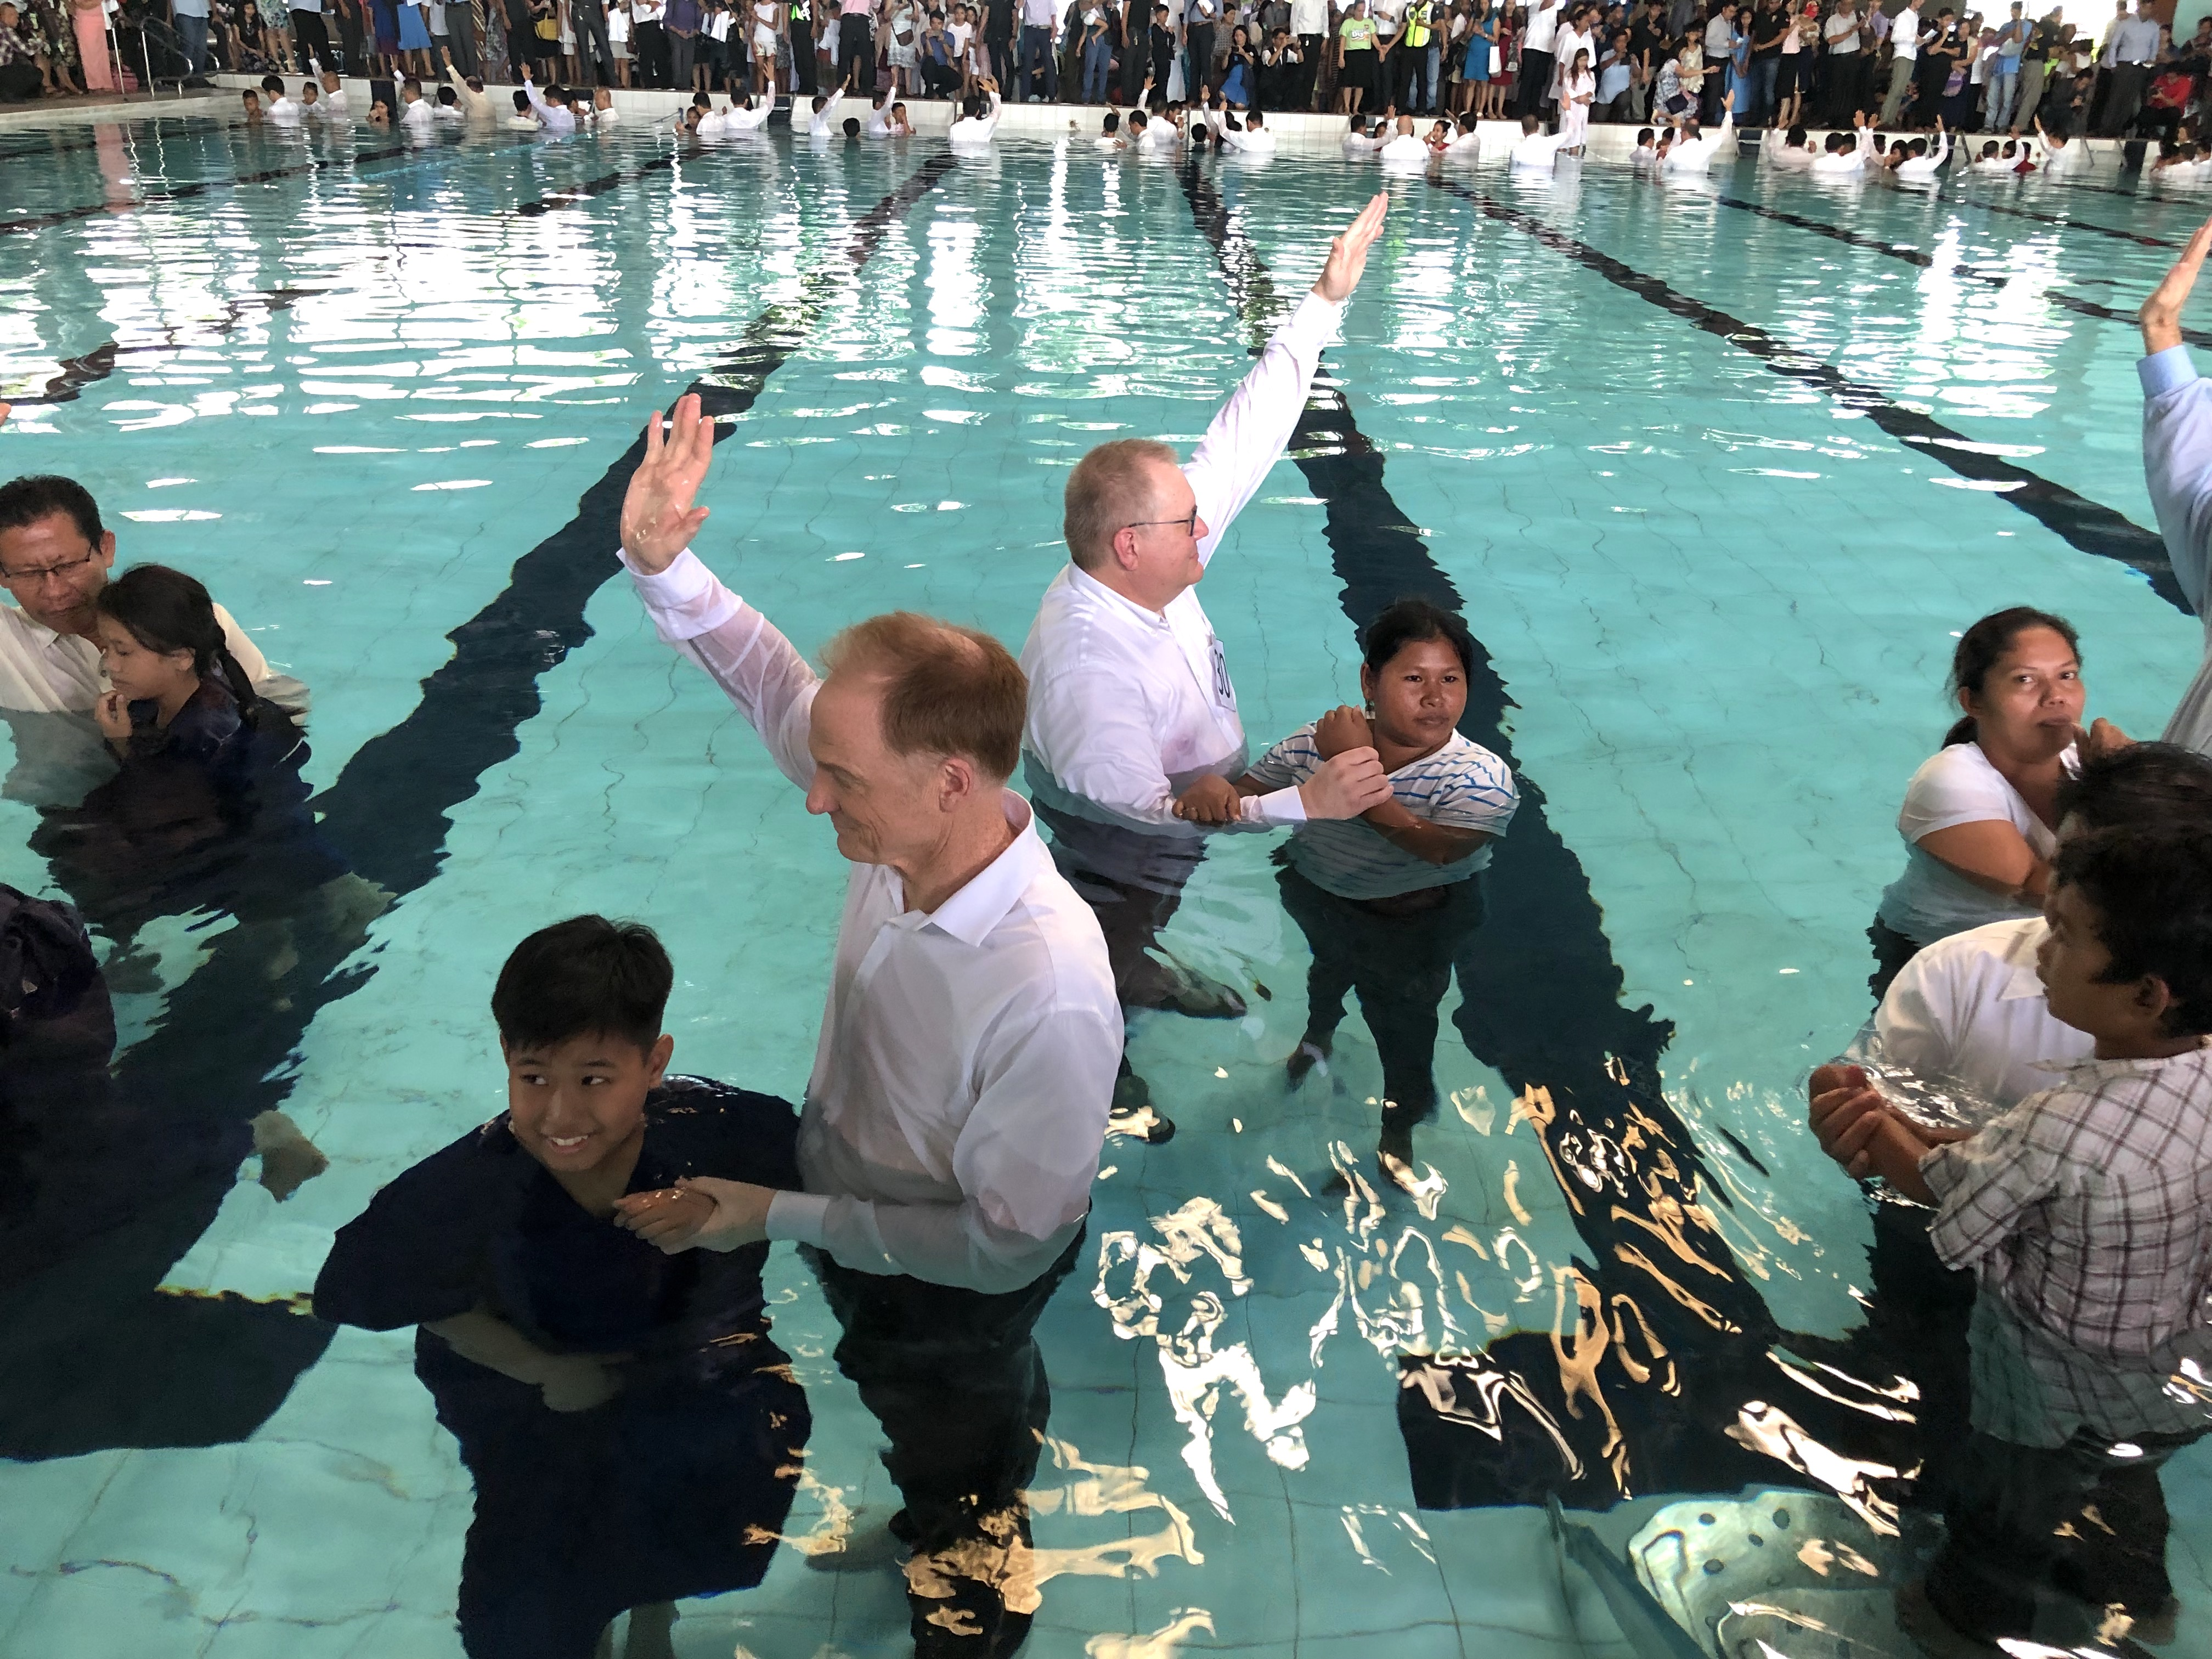 Pastors baptizing many people in a pool